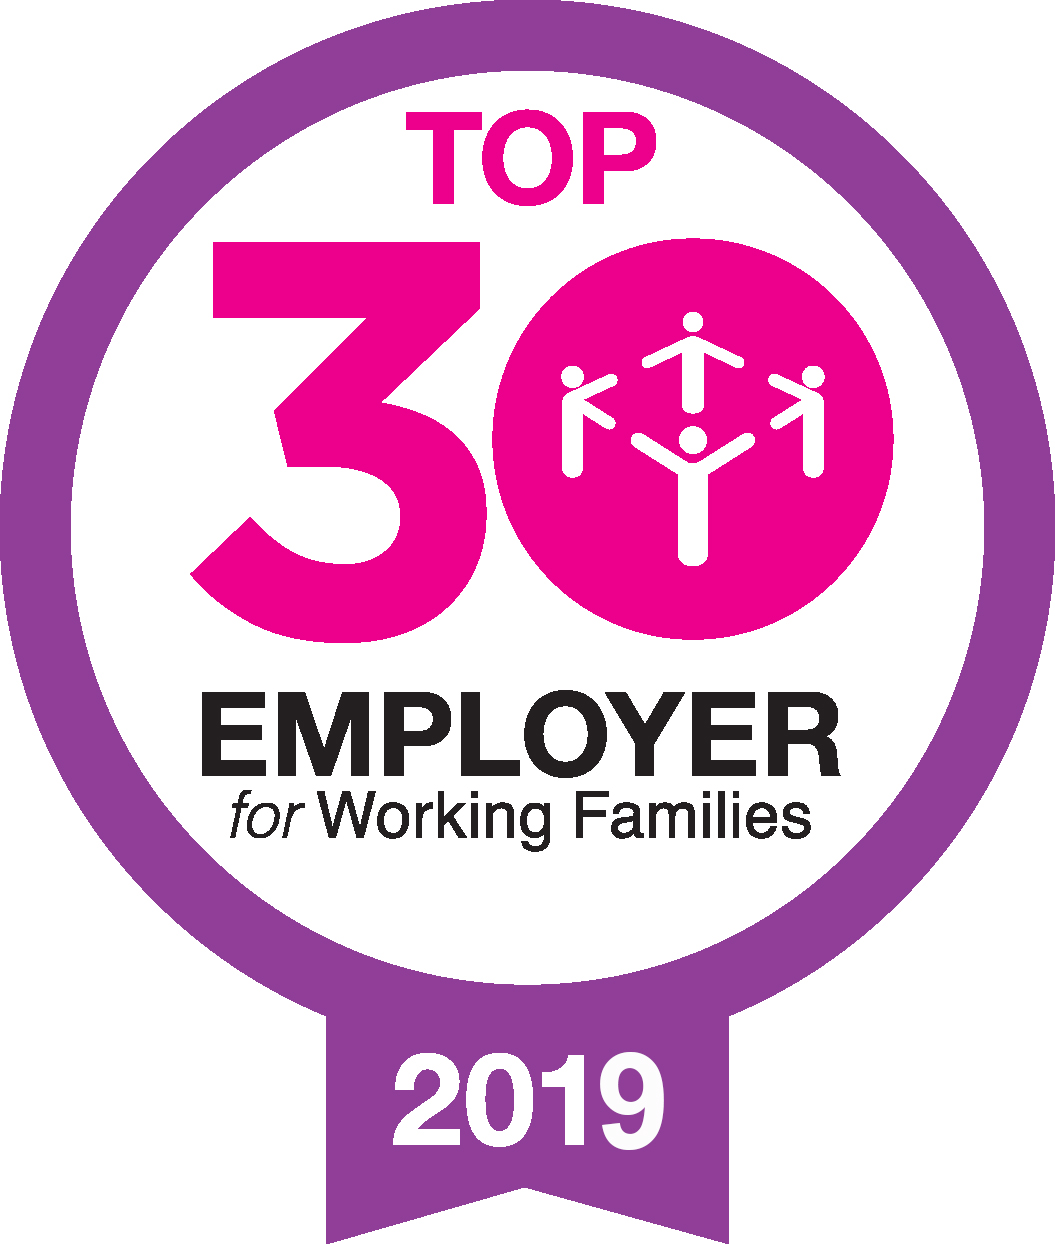 Top 30 employer for working families 2019